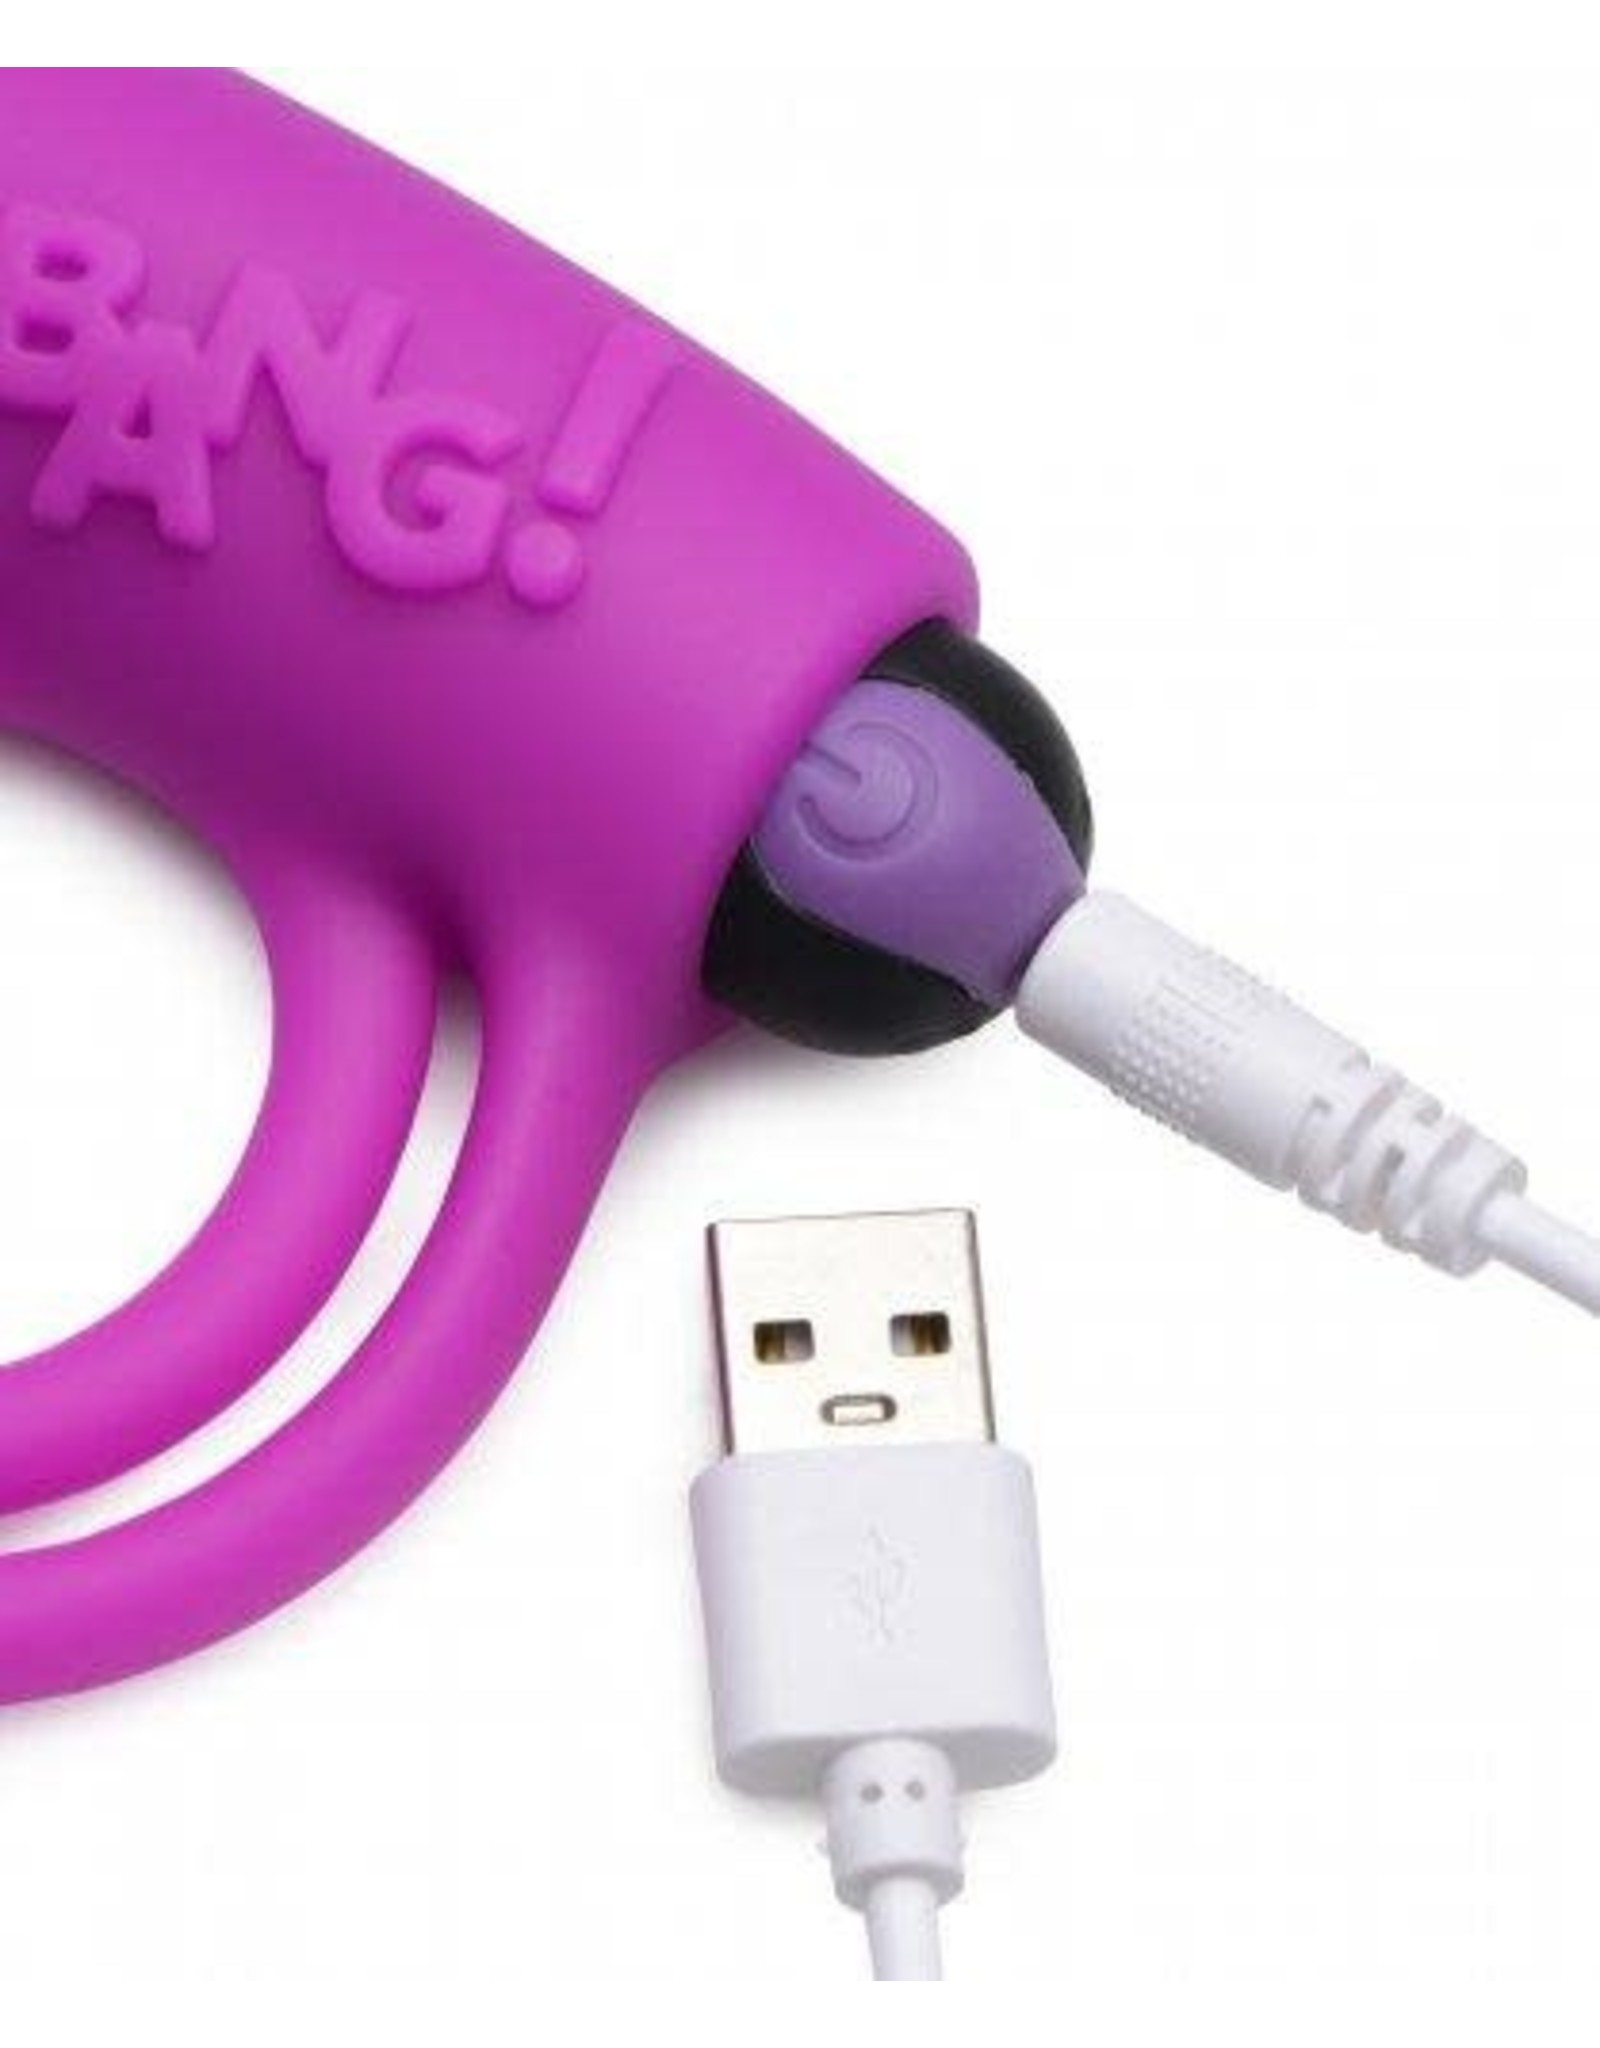 XR Brands Bang! Rechargeable Silicone Cock Ring and Bullet With Remote - Purple